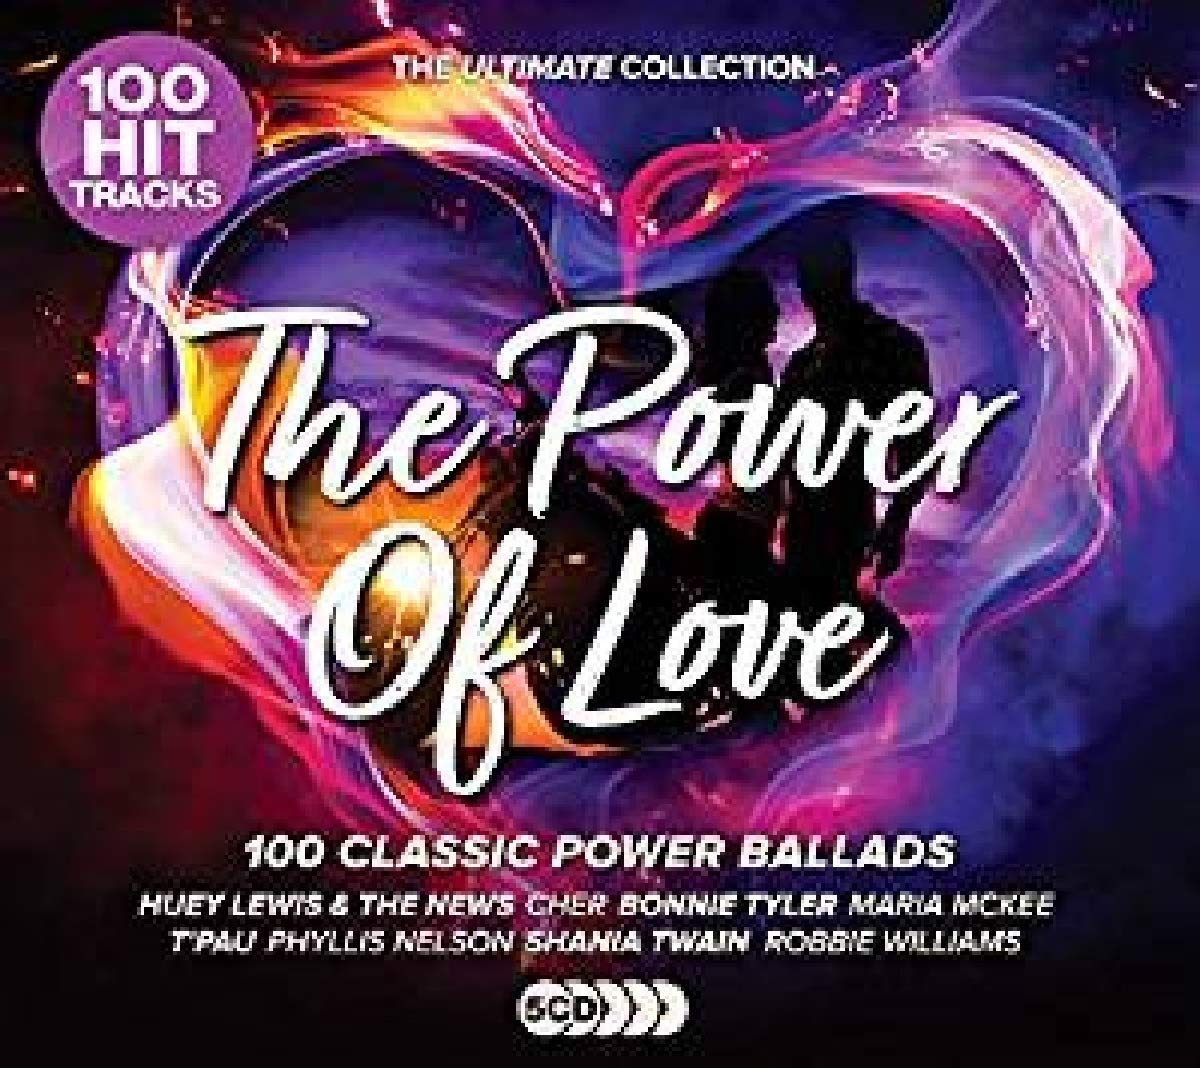 f91669c49d4c7 Ultimate Collection: The Power Of Love